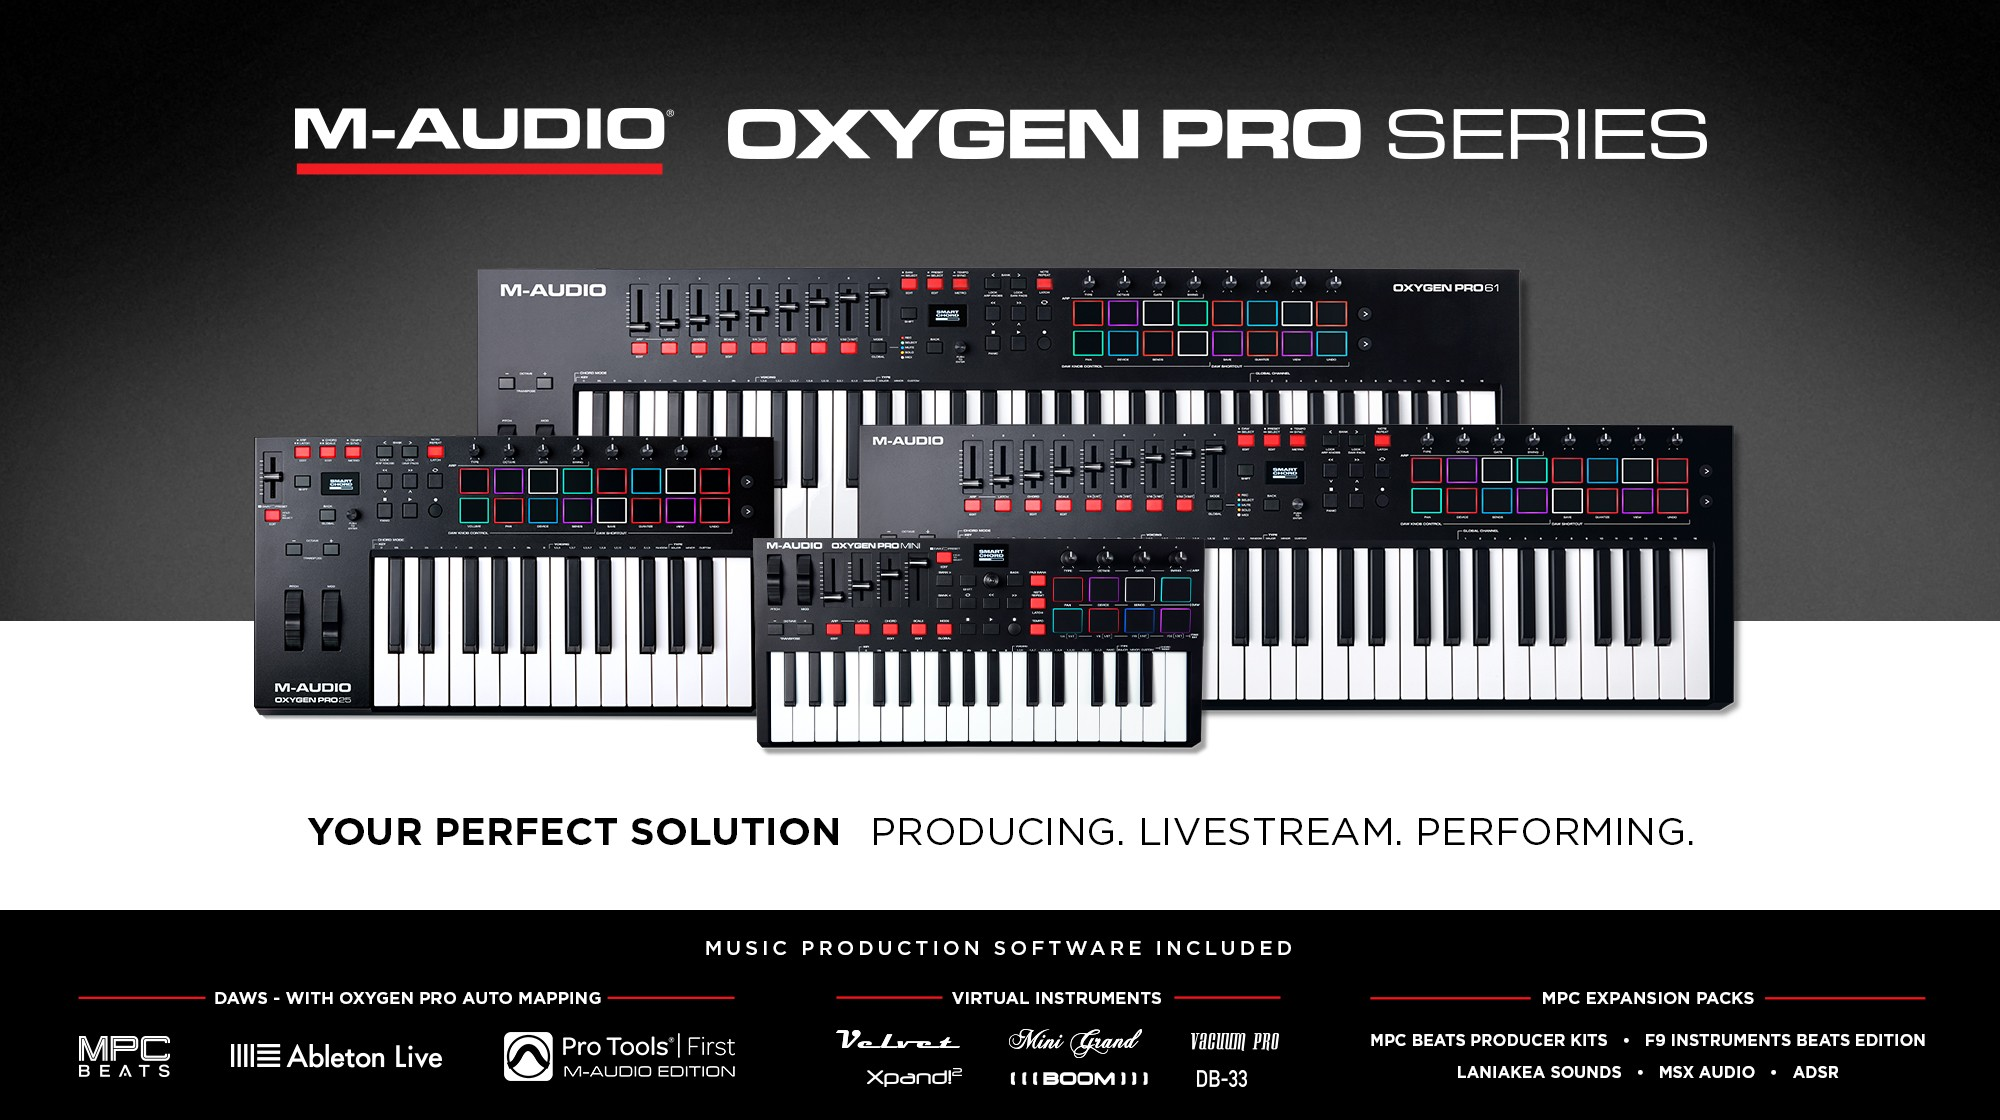 Oxygen Pro series controllers